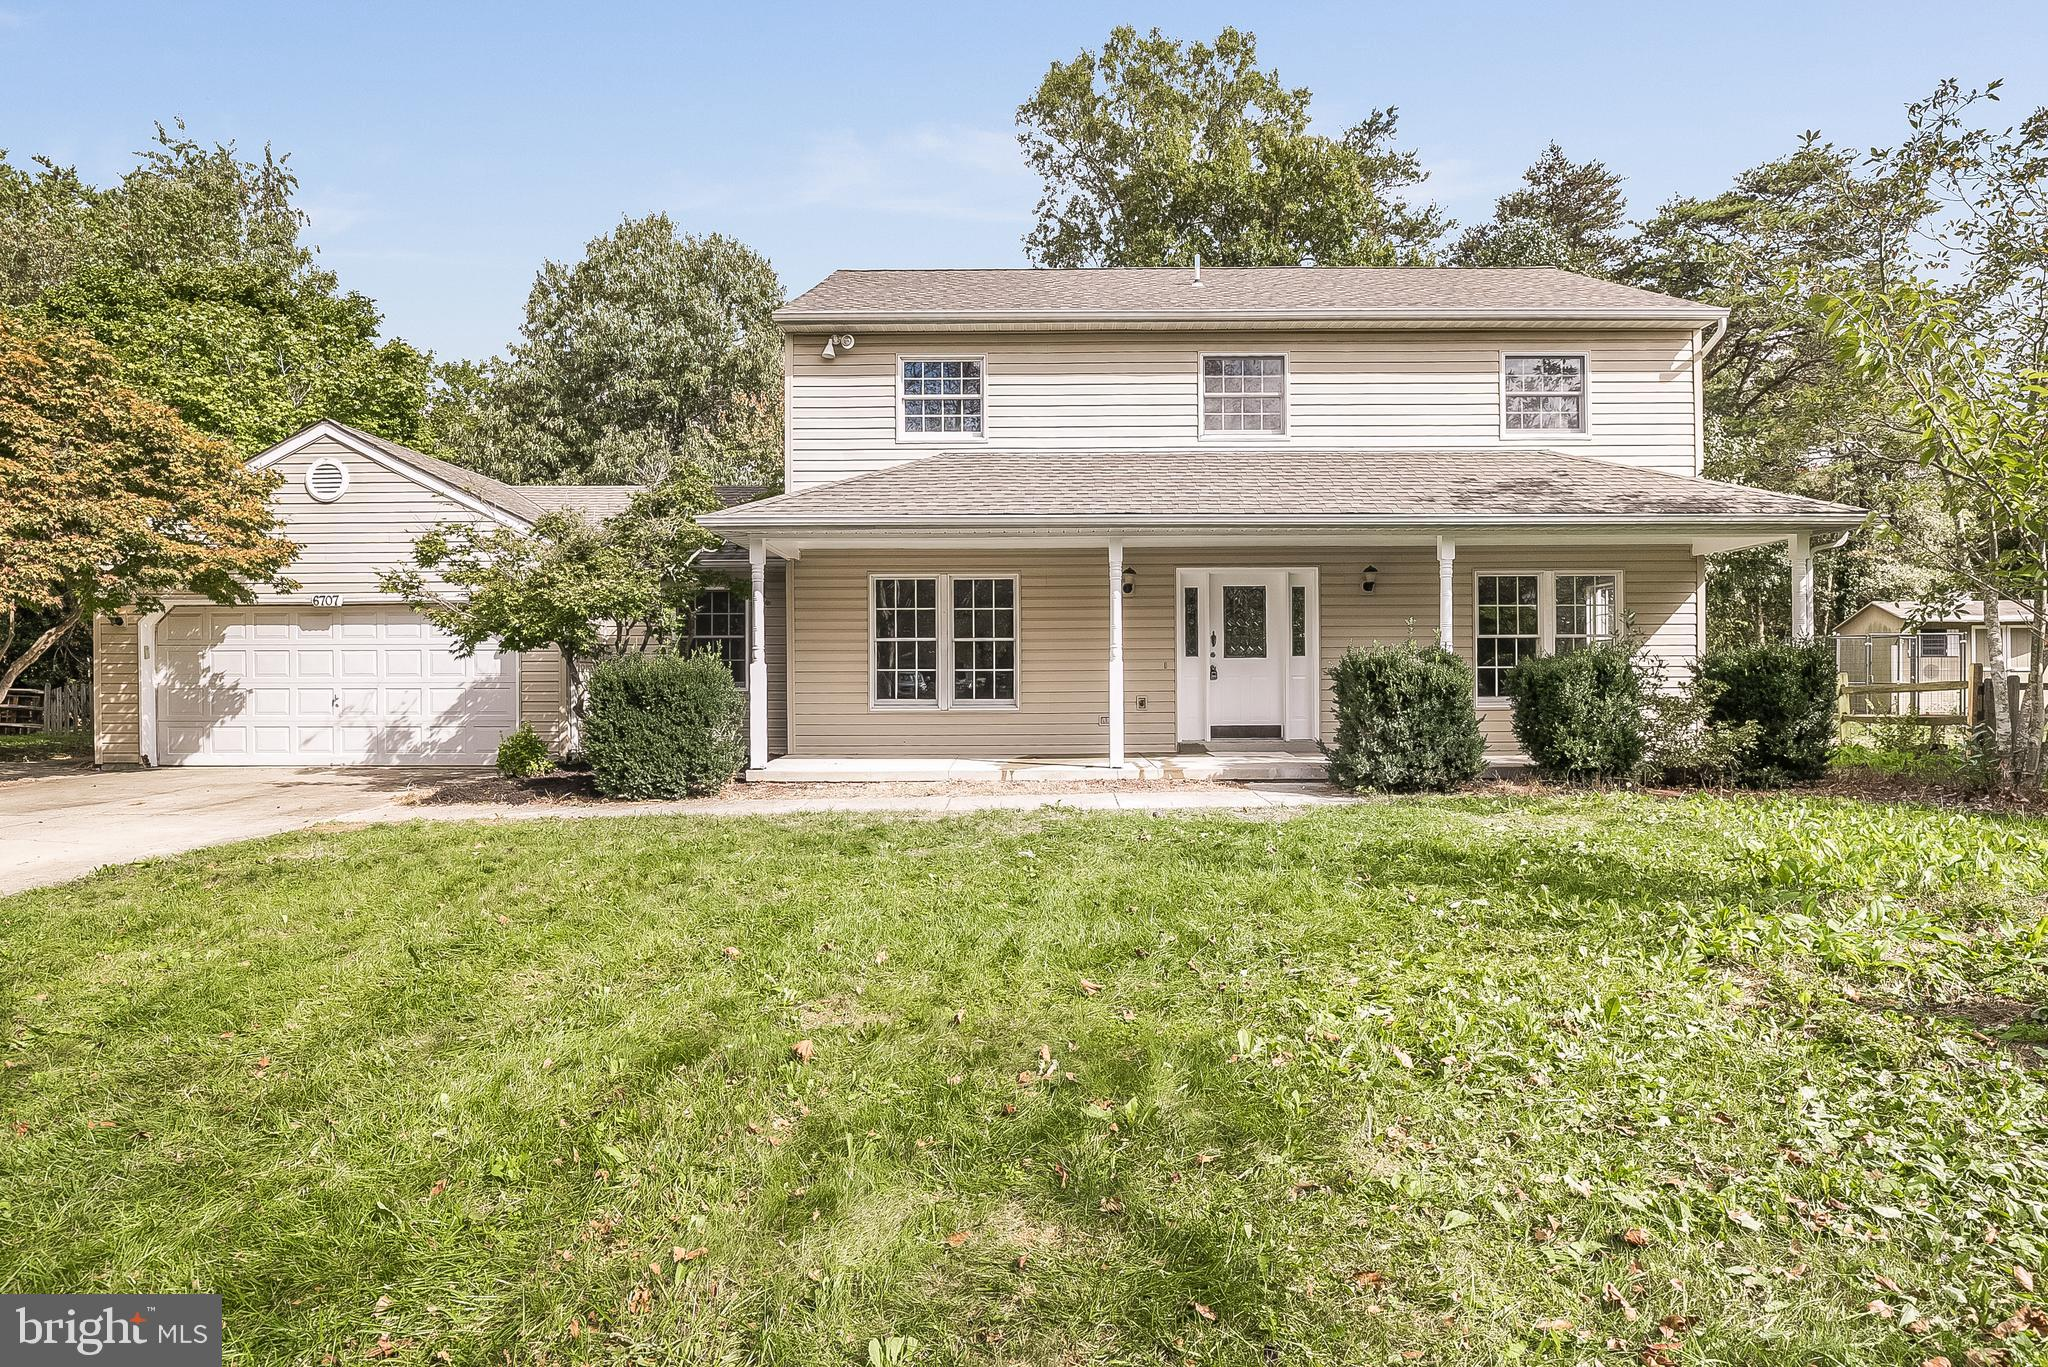 Welcome to this spectacular home that is renovated throughout by a caring homeowner! This home has a